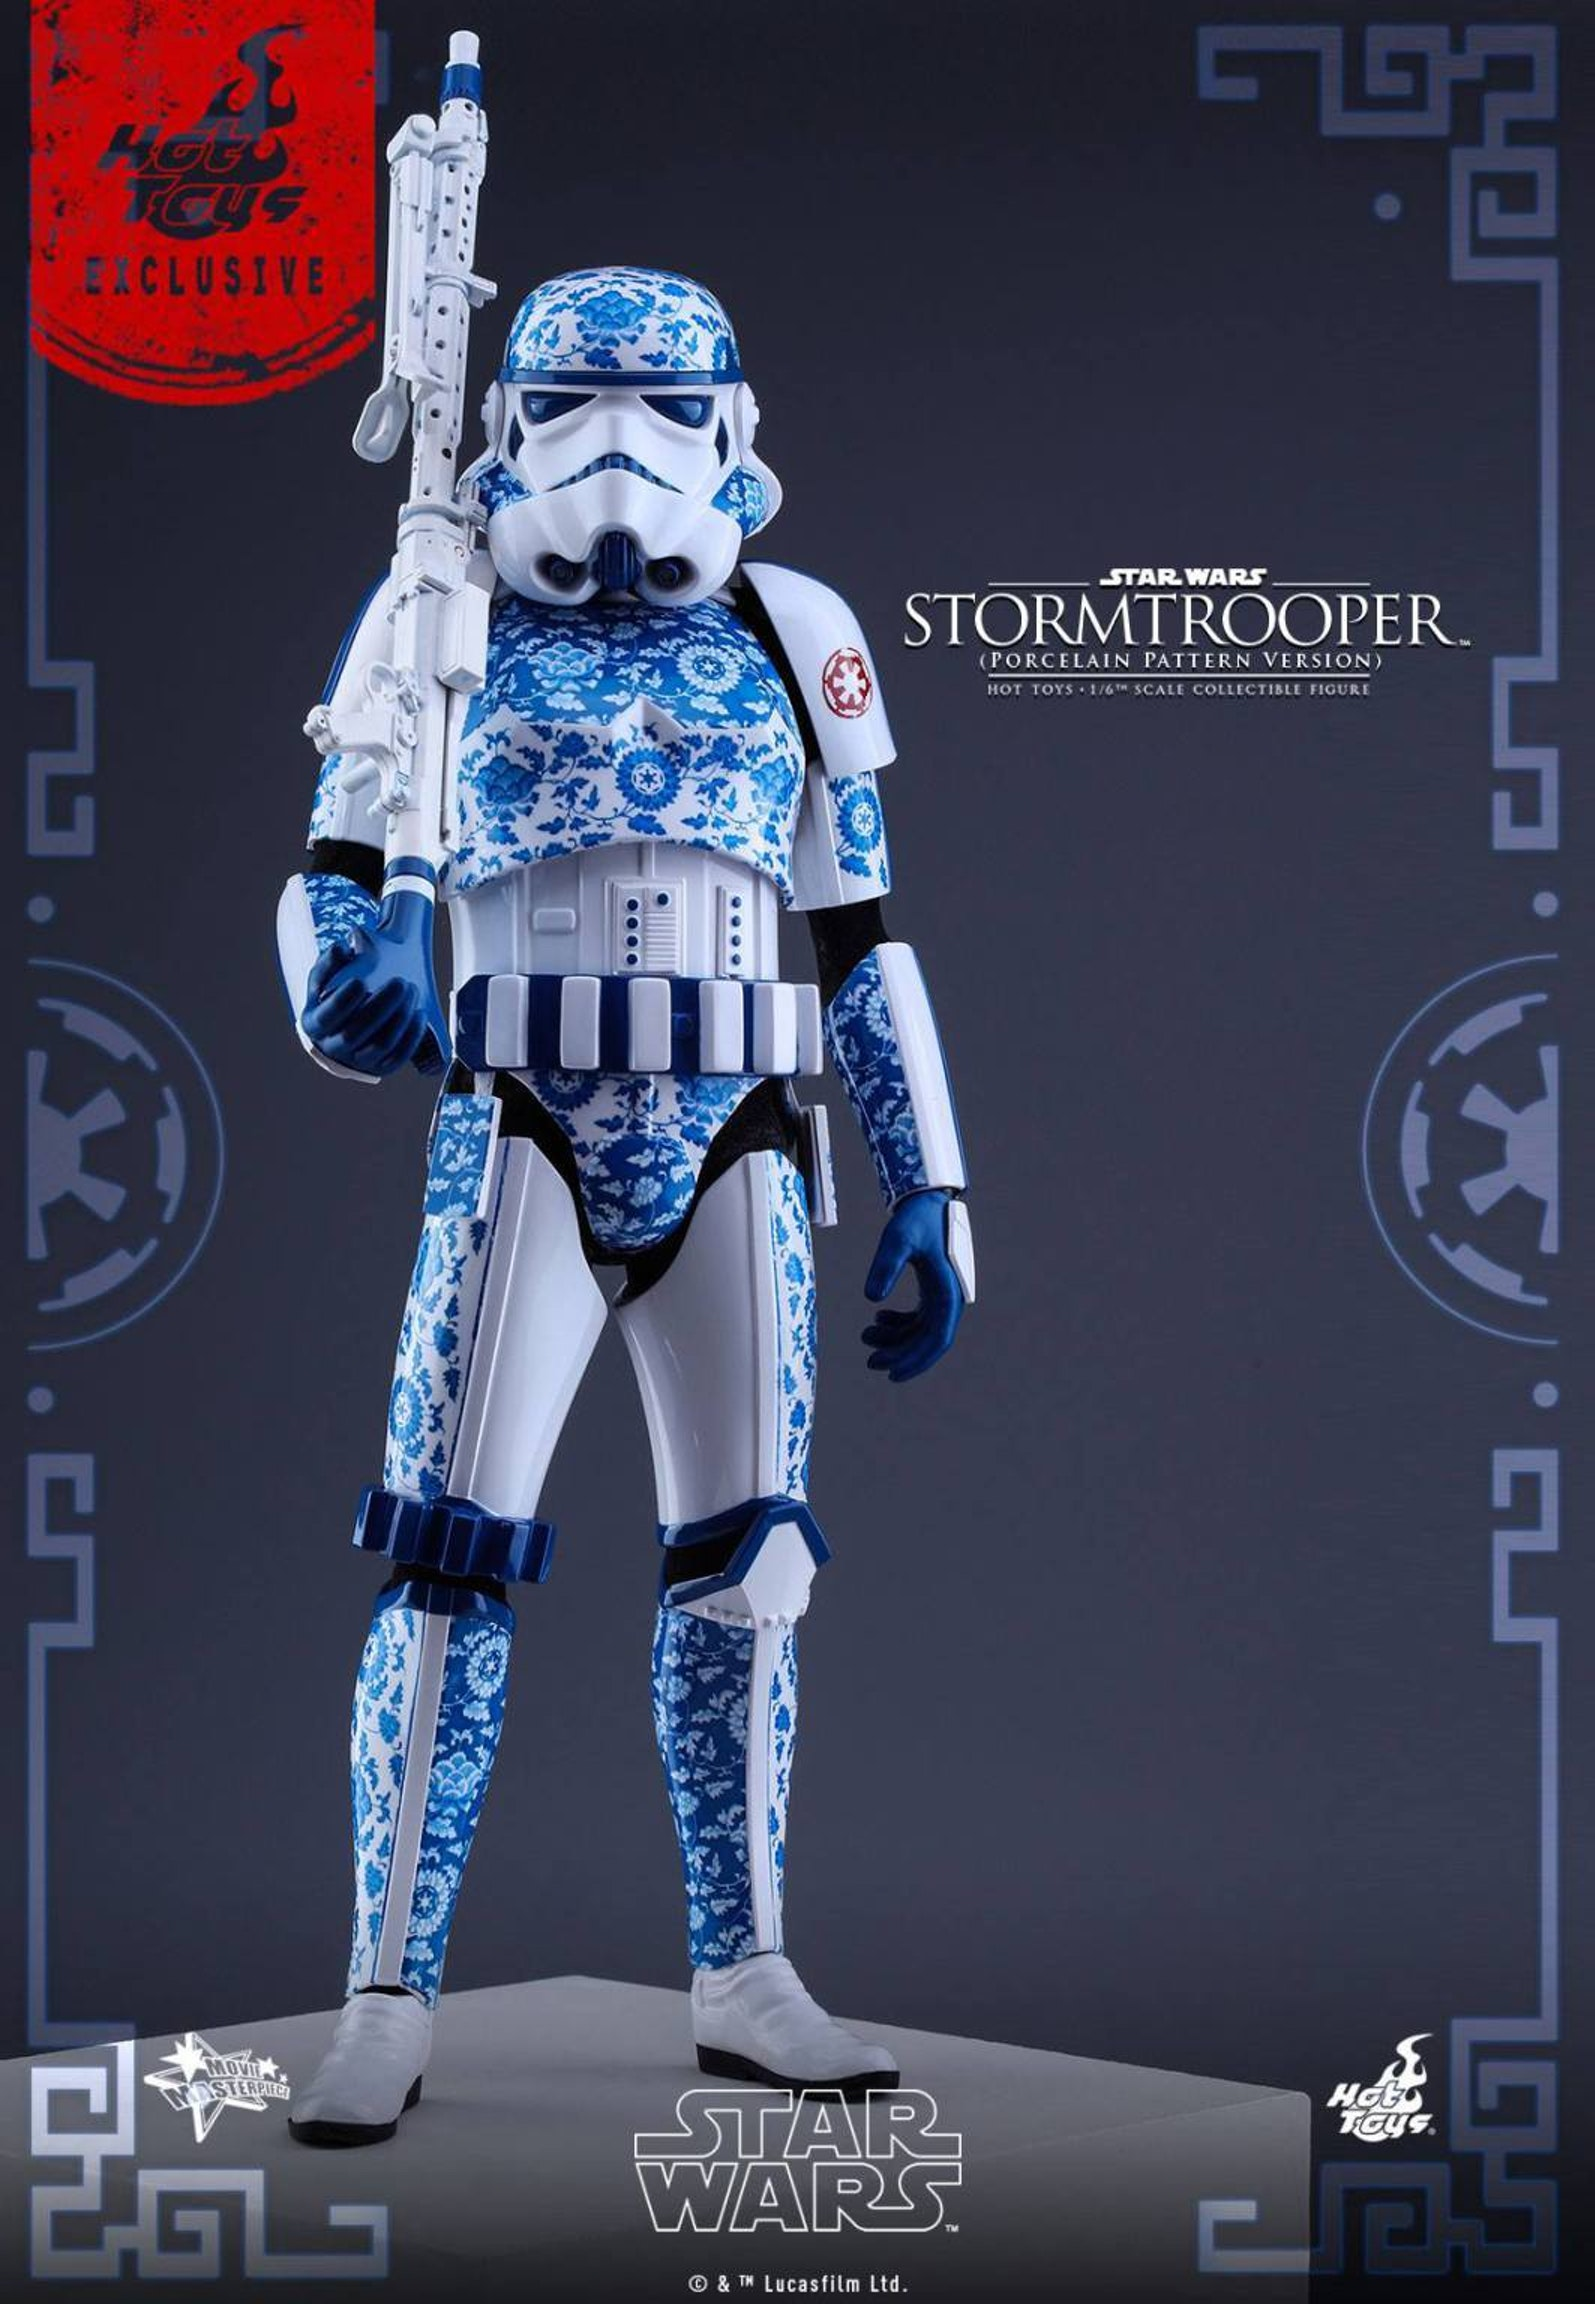 Only imperial stormtroopers are so precisely painted.